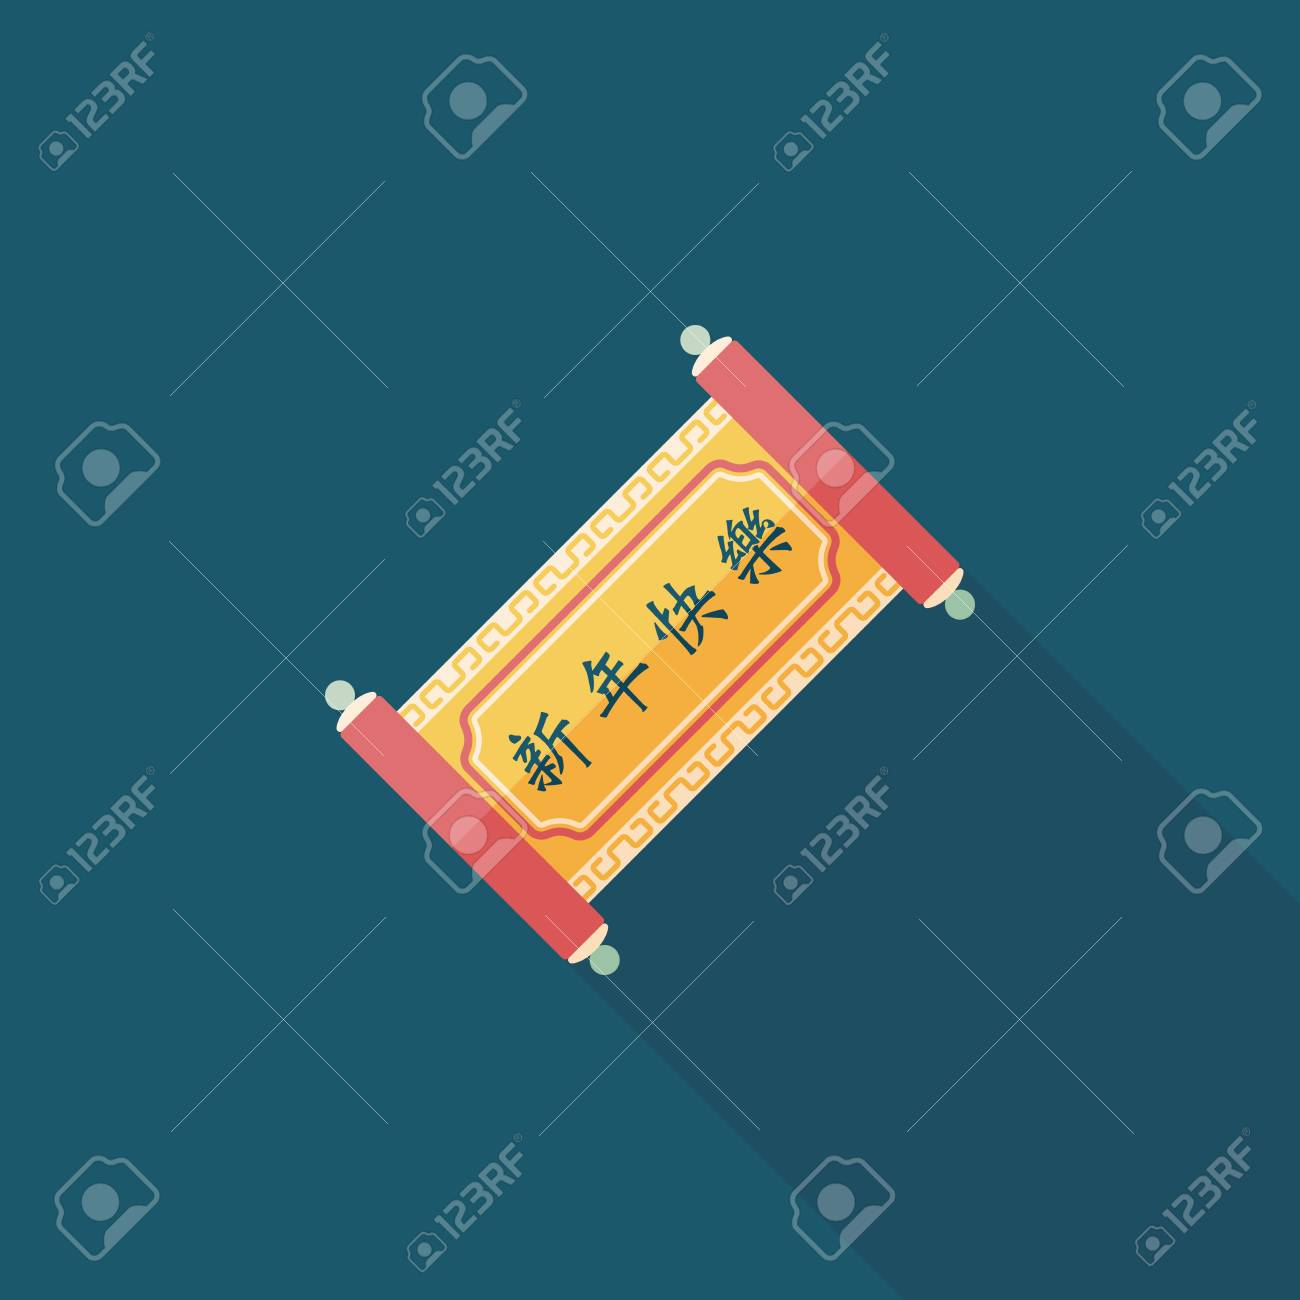 b0f18a3de Chinese New Year flat icon with long shadow, Chinese words calligraphy  scrolls means